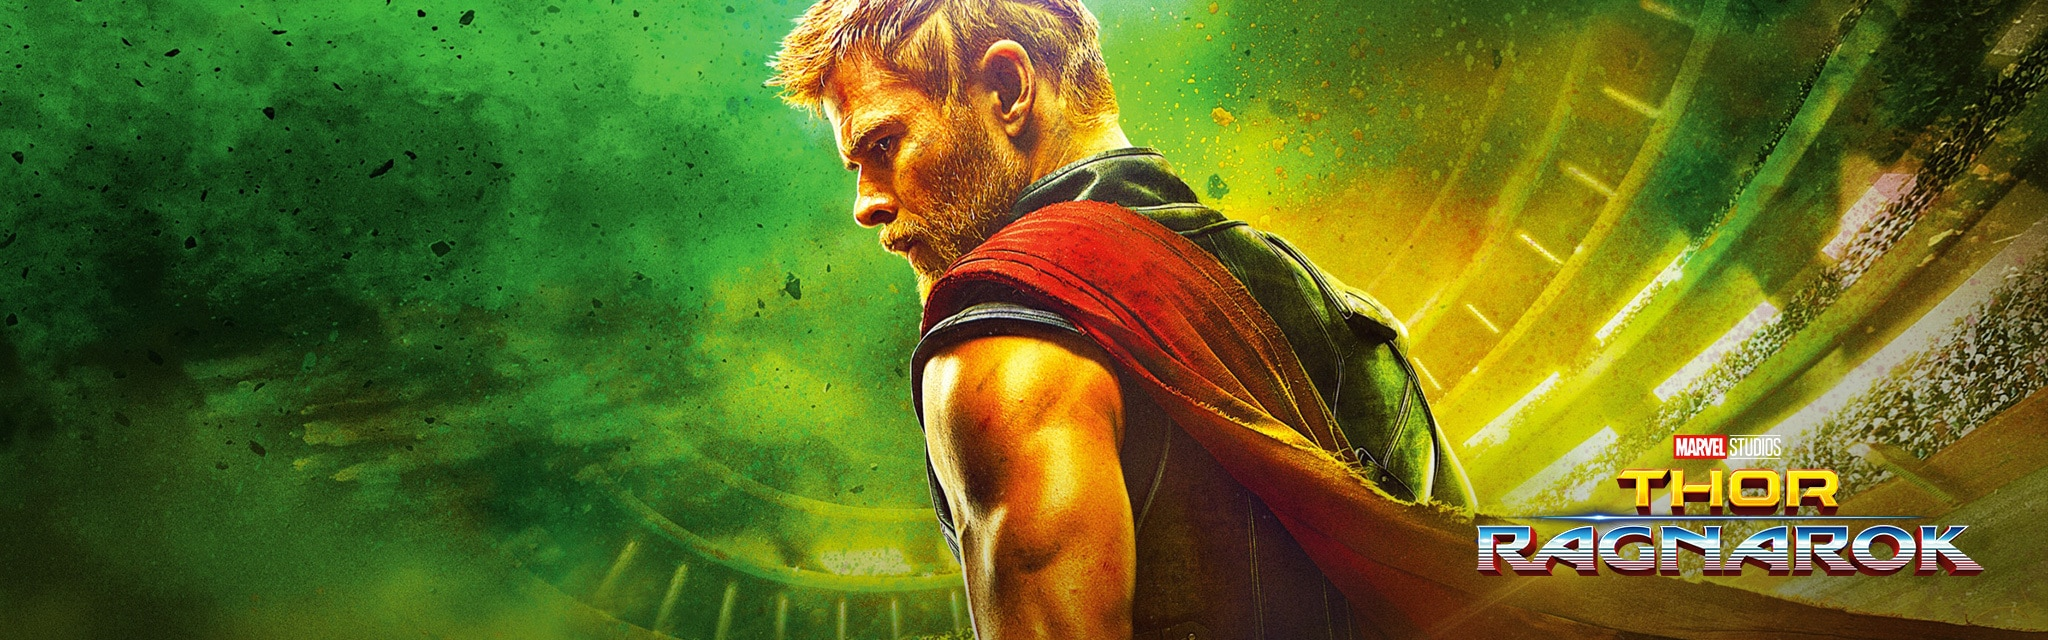 Thor: Ragnarok - Theatrical Release - Movie Hero